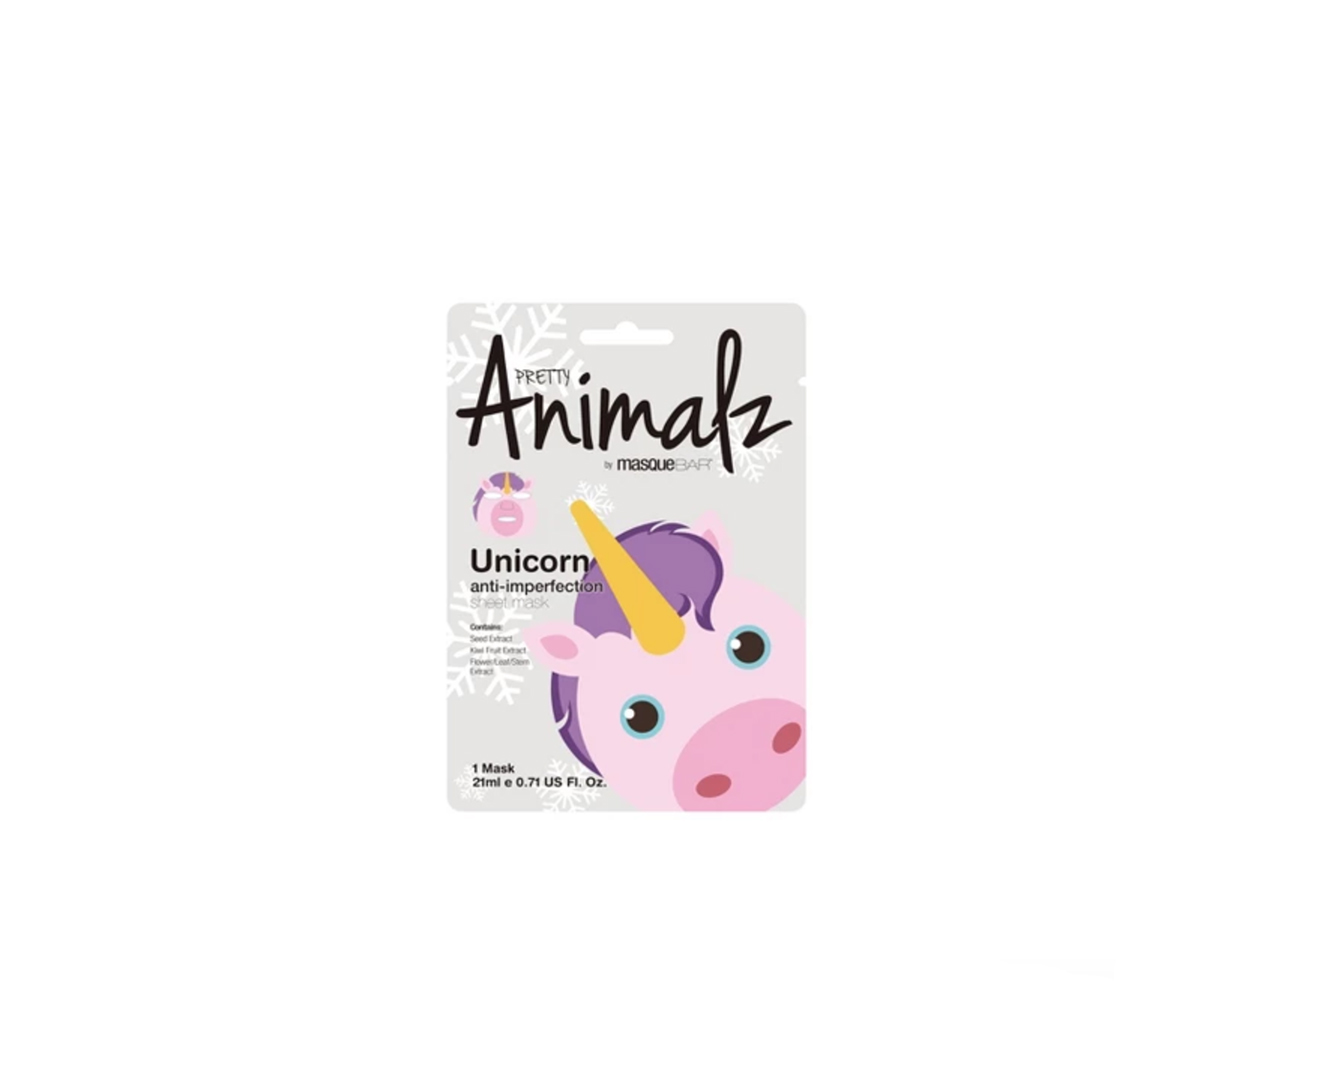 Masque Bar Pretty Animalz Facial Treatments Pink